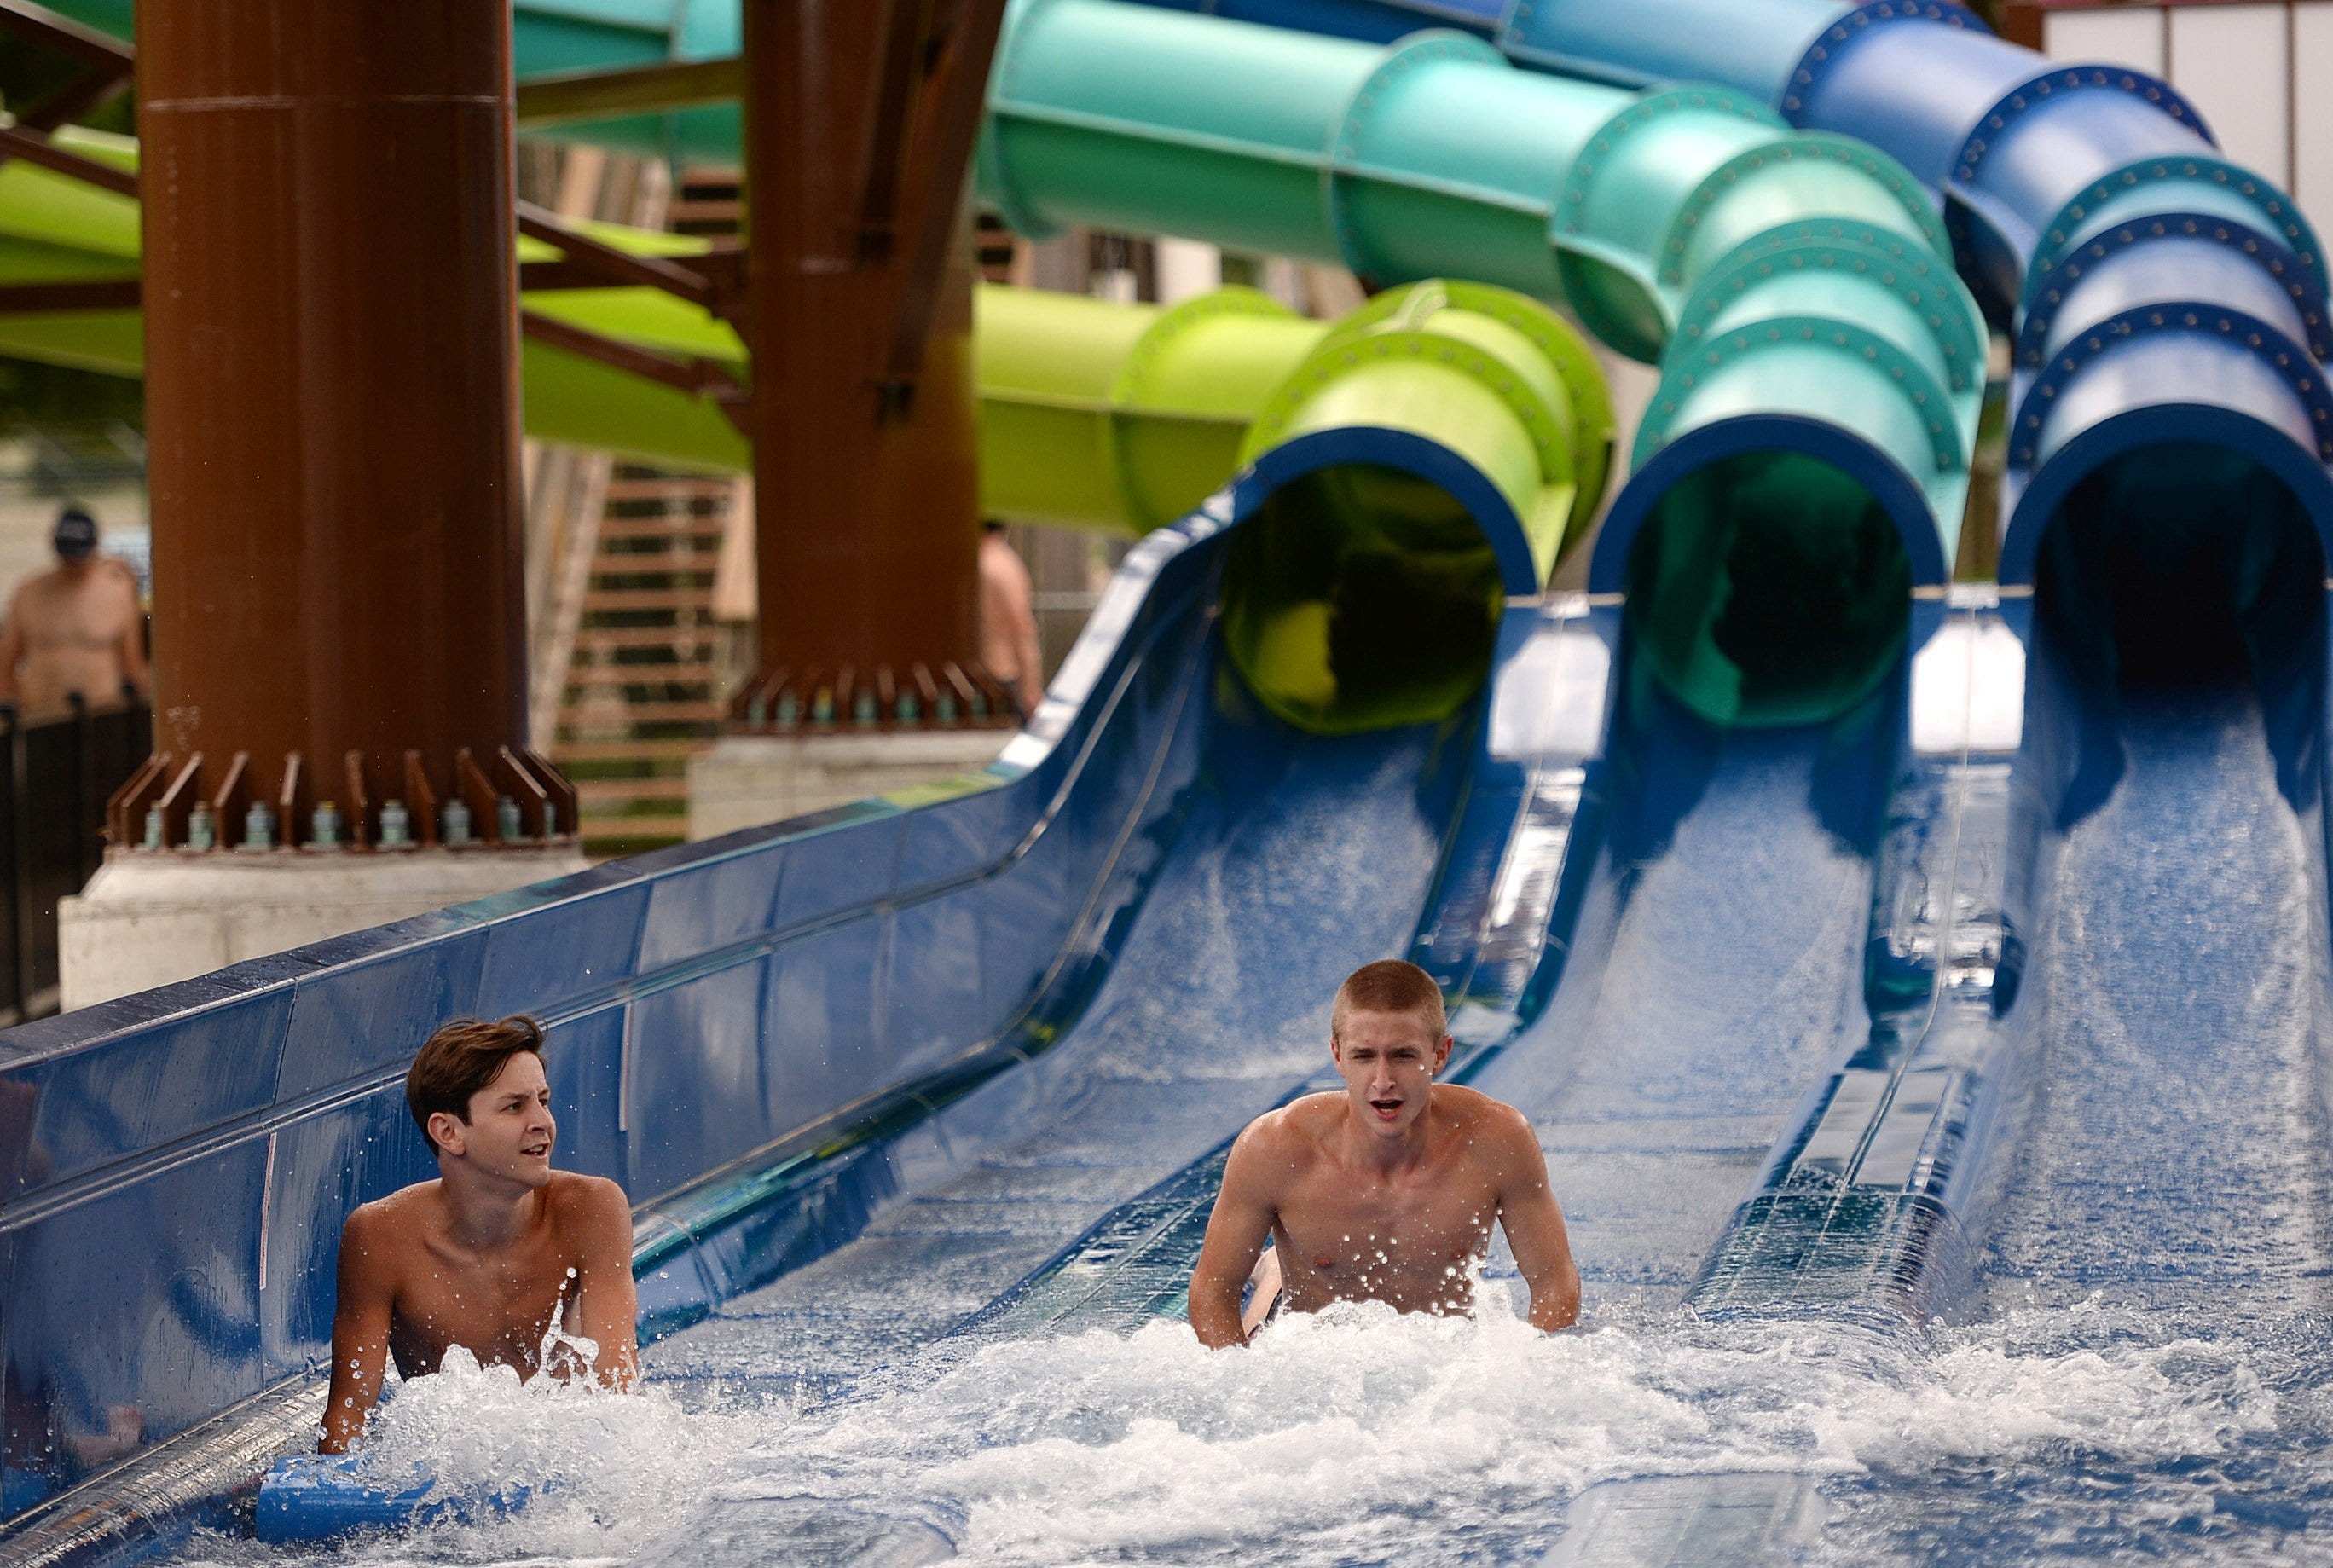 Vincent Kloecker, 16, left, and Peter Frisina, 19, right, both of Erie, ride the Rally Racer on July 22, 2020 at Waldameer Park & Water World in Millcreek Township. Attendance at the park is down due to COVID-19.